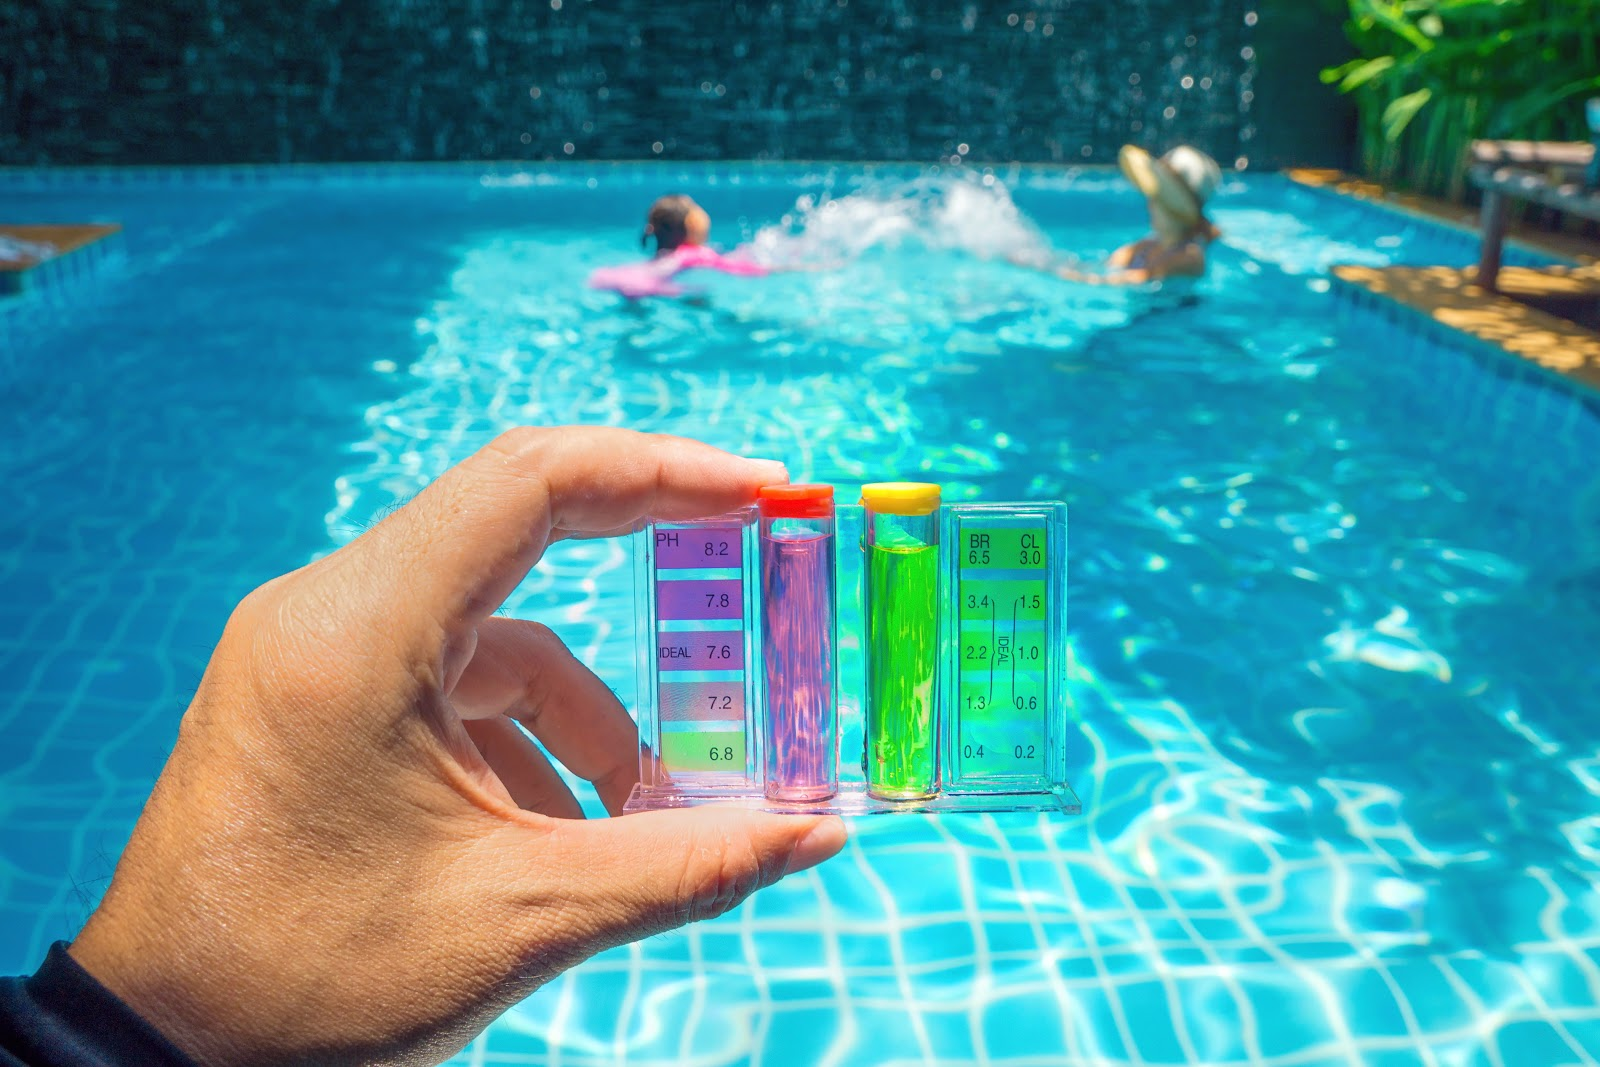 holding a pink and green test kit next to an inground pool where a woman and young girl are swimming